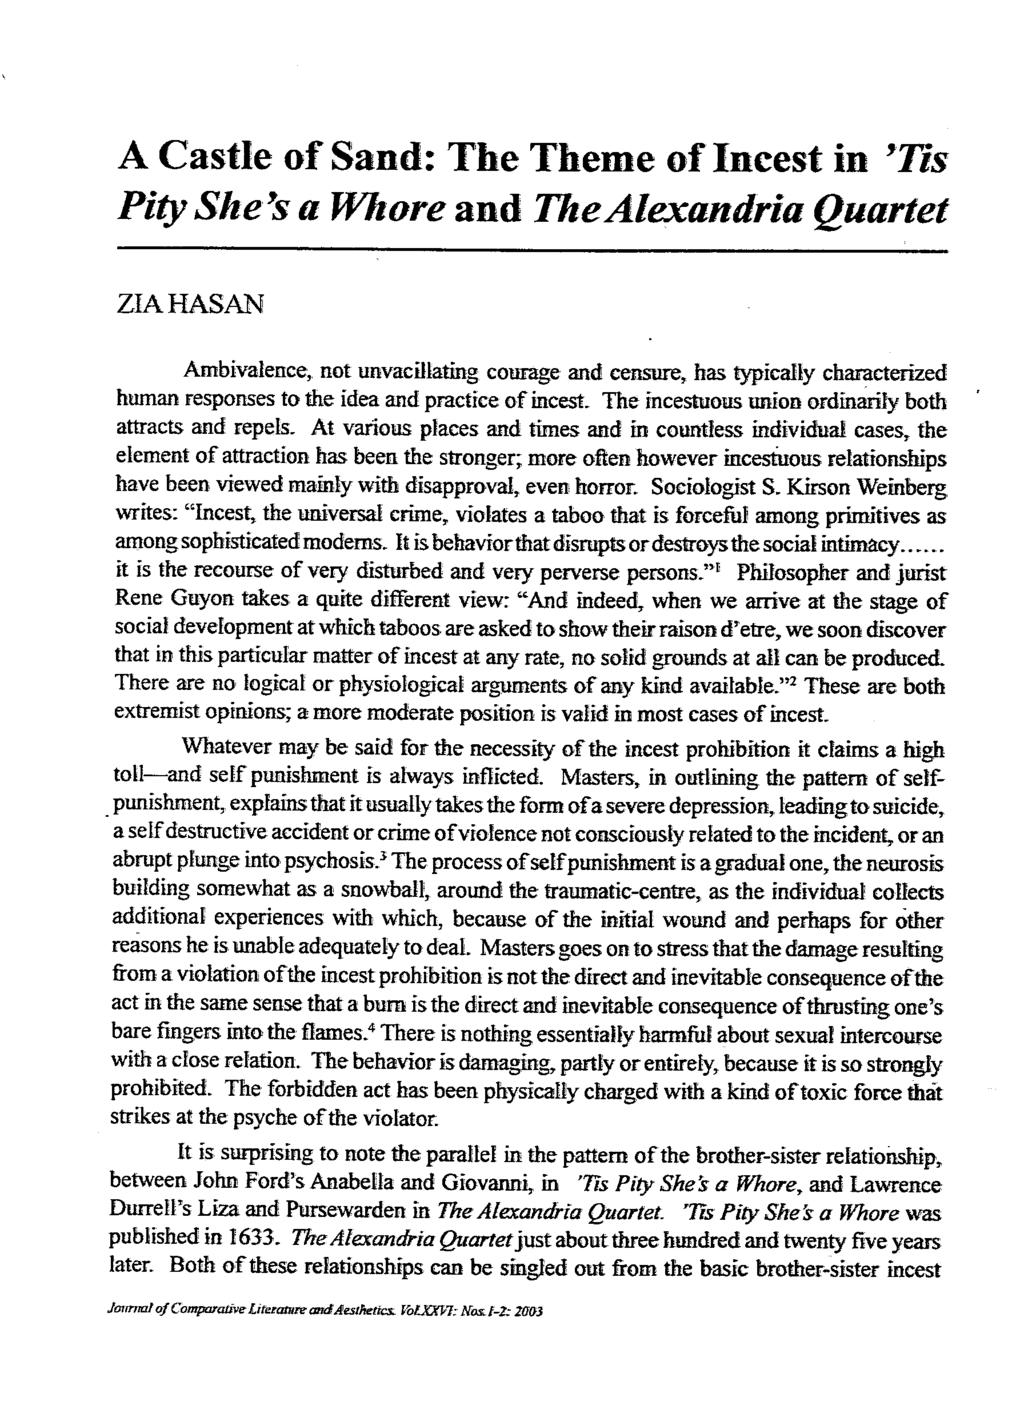 A Castle of Sand: The Theme of Incest in 'Tis Pity She x a Whore and TheAlexandria Quartet ZIAHASAN Ambivalence, not unvacillating courage and censure, has typically characterized human responses to